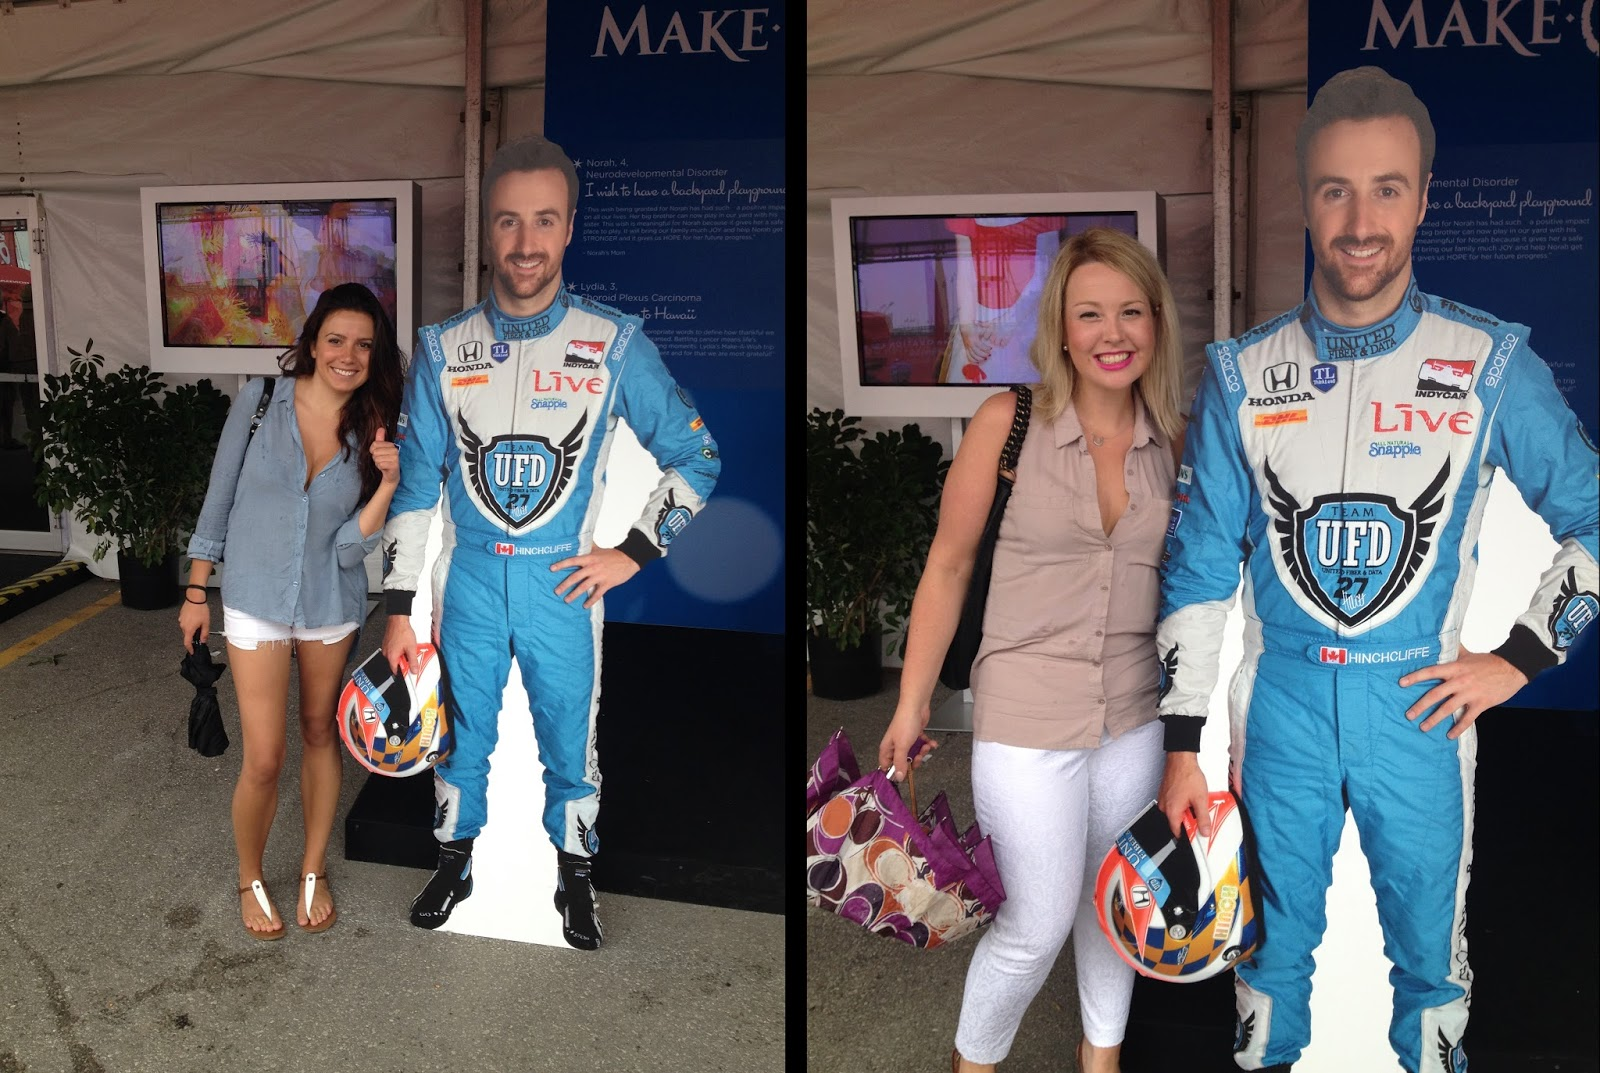 Us gals in front of a James Hinchcliffe cardboard cutout